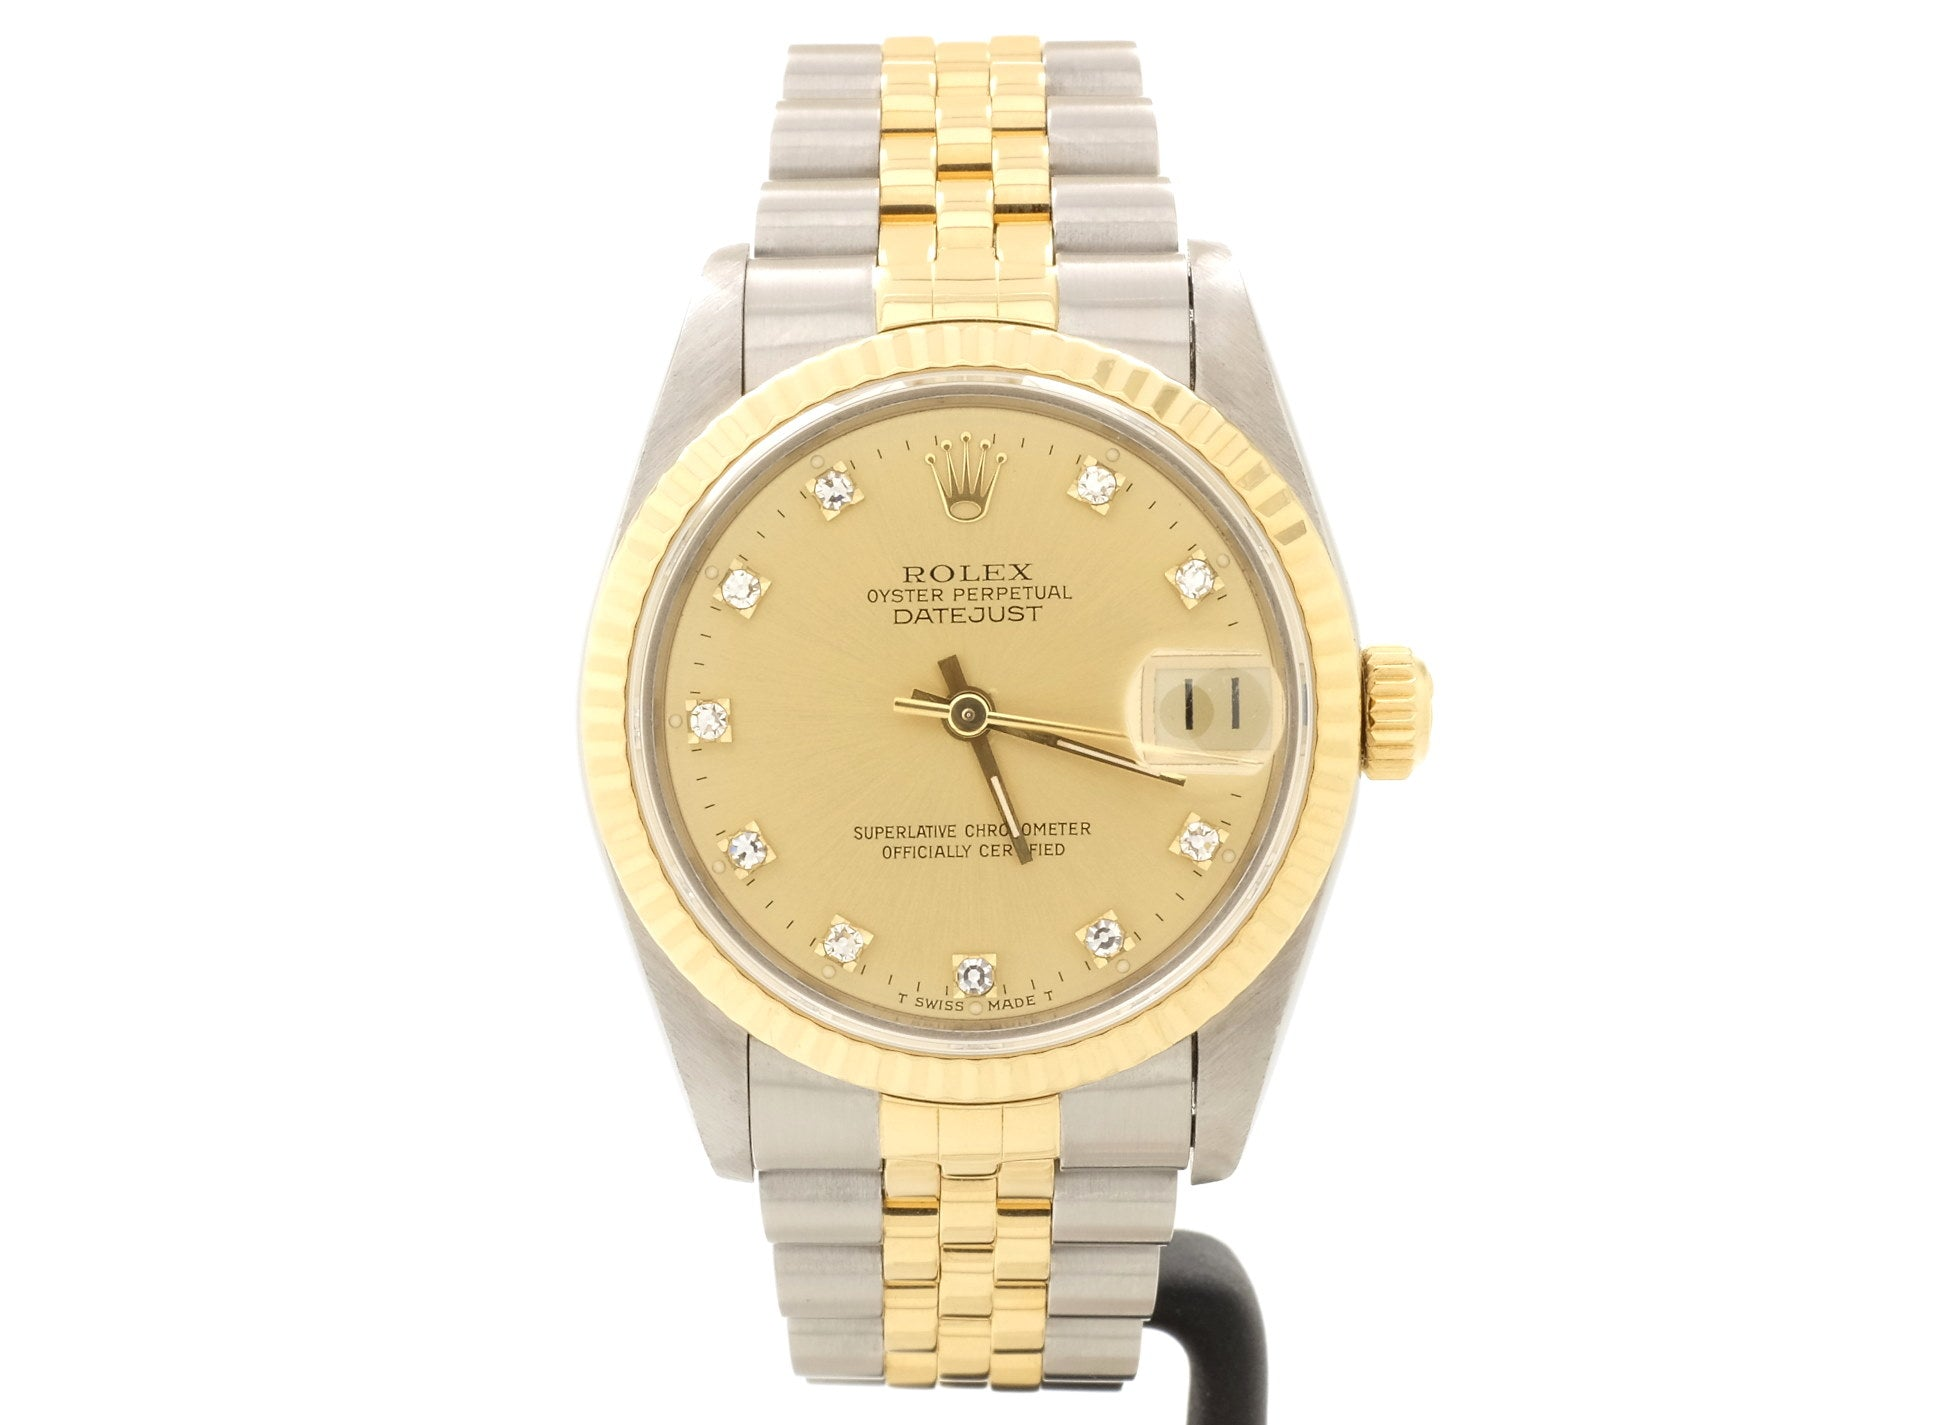 Mid-Size Ladies' 18ct-and-Steel Rolex DATEJUST 68273 with Sparkly Diamond-Dot Dial